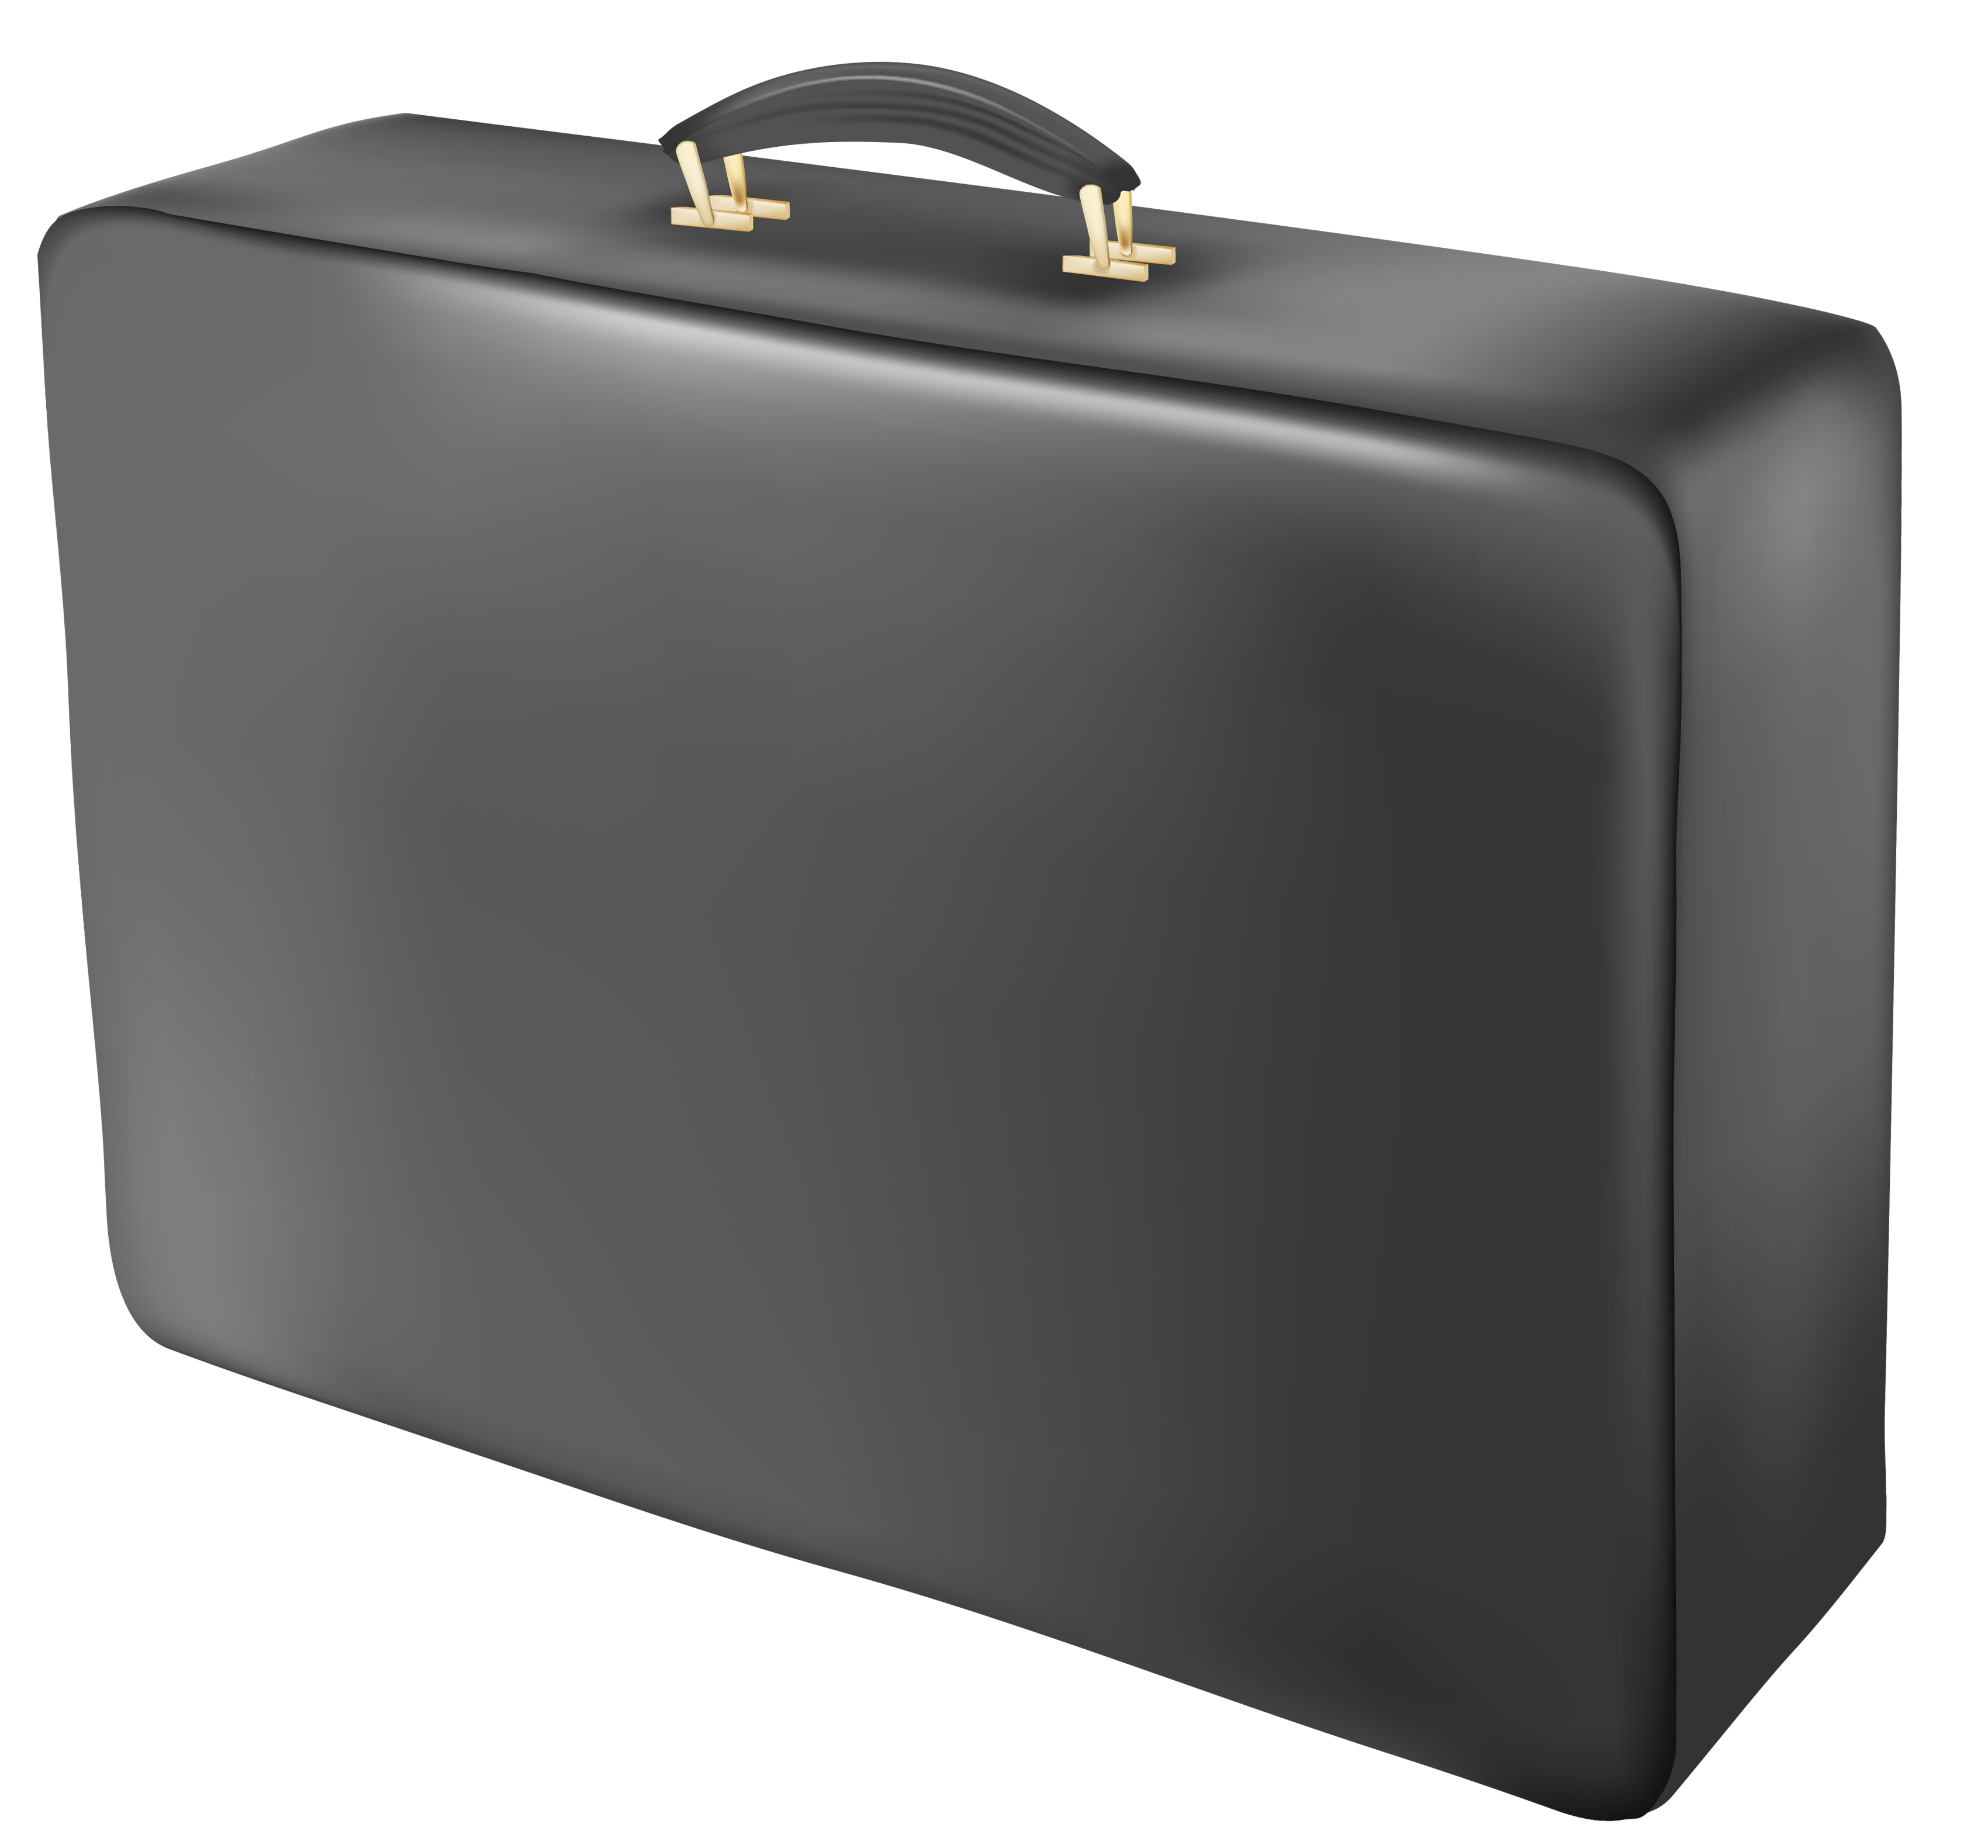 Luggage clipart briefcase. Black suitcase png picture